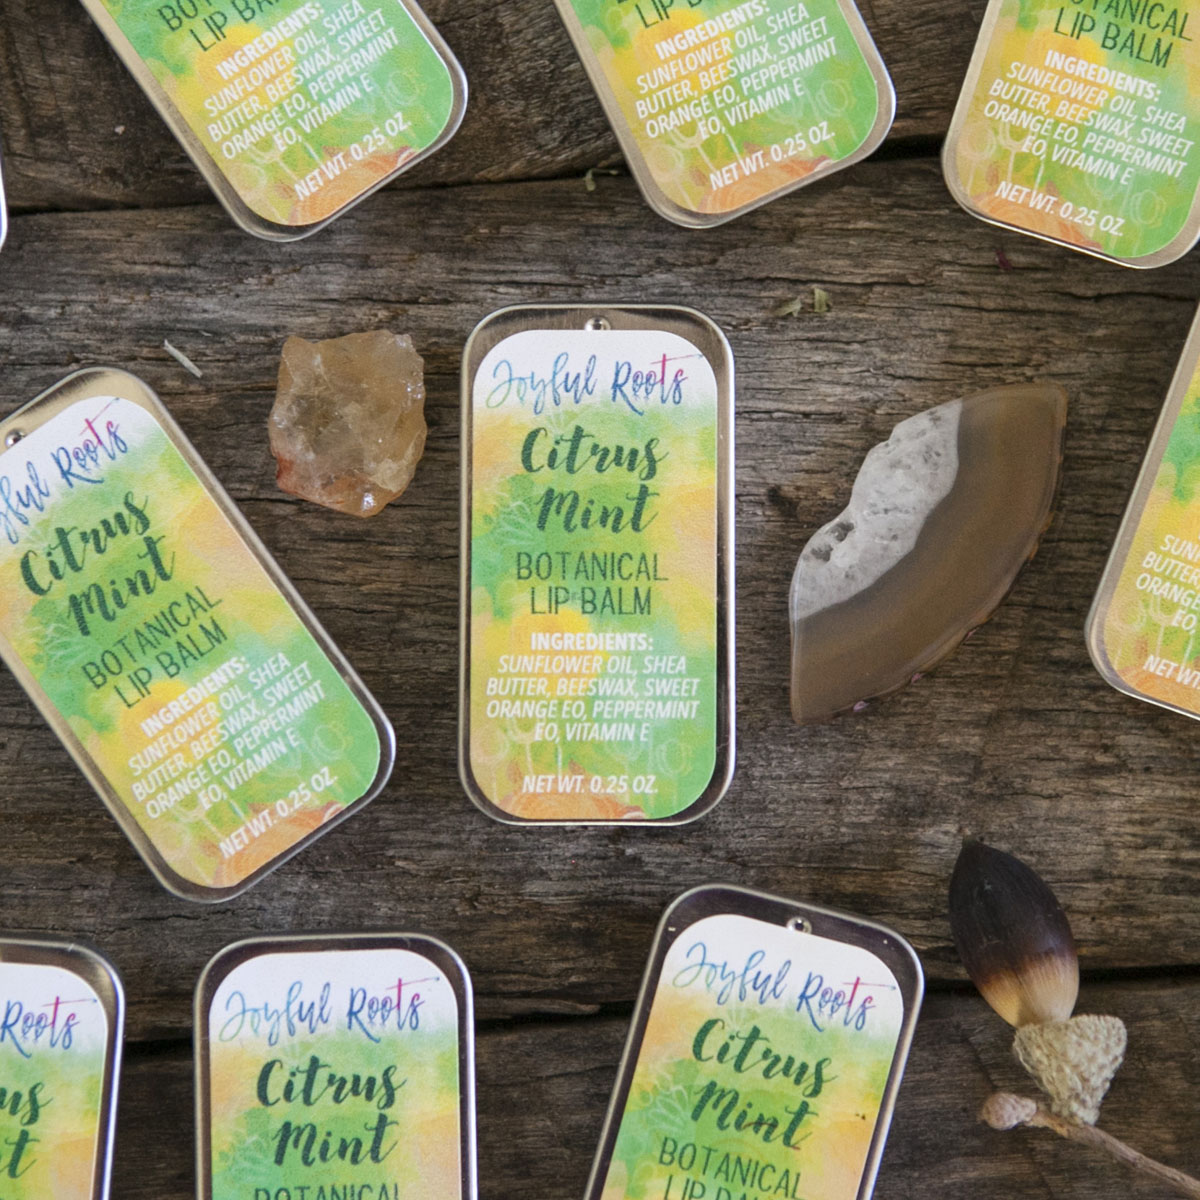 Joyful Roots Free Botanical Lip Balm Citrus Mint Herbal Skincare and Wellness